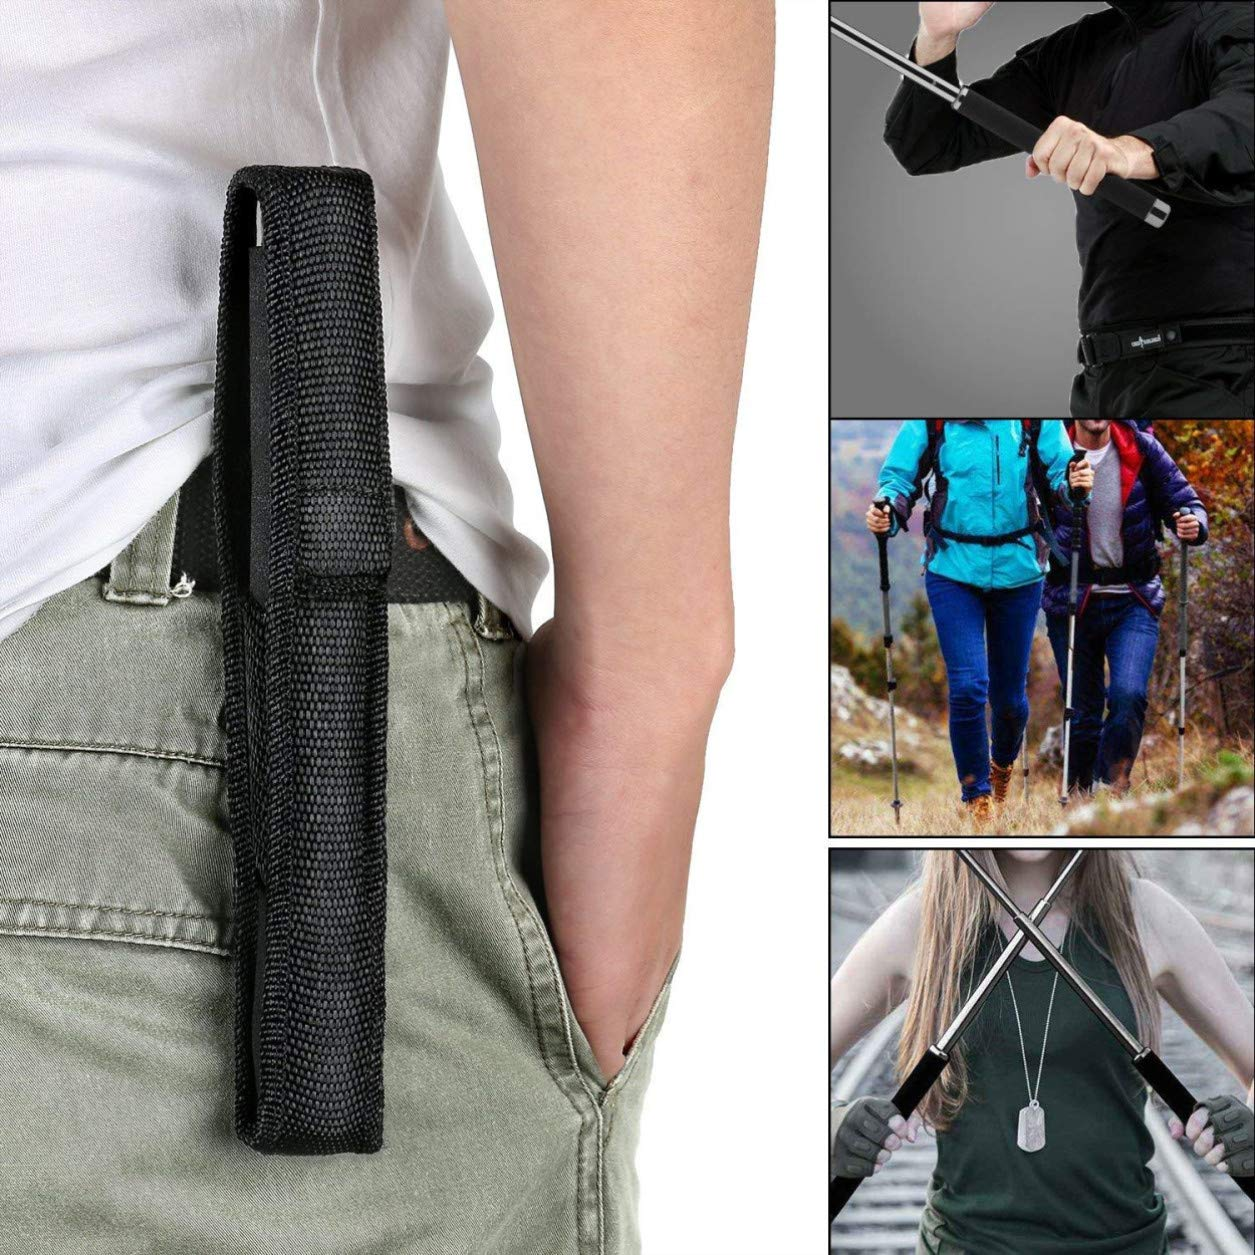 OLPJKHN 26 inches Extensible Baton and Baton Holder 100/% Nylon Emergency Outdoor Escape Tool Applicable to Men and Women